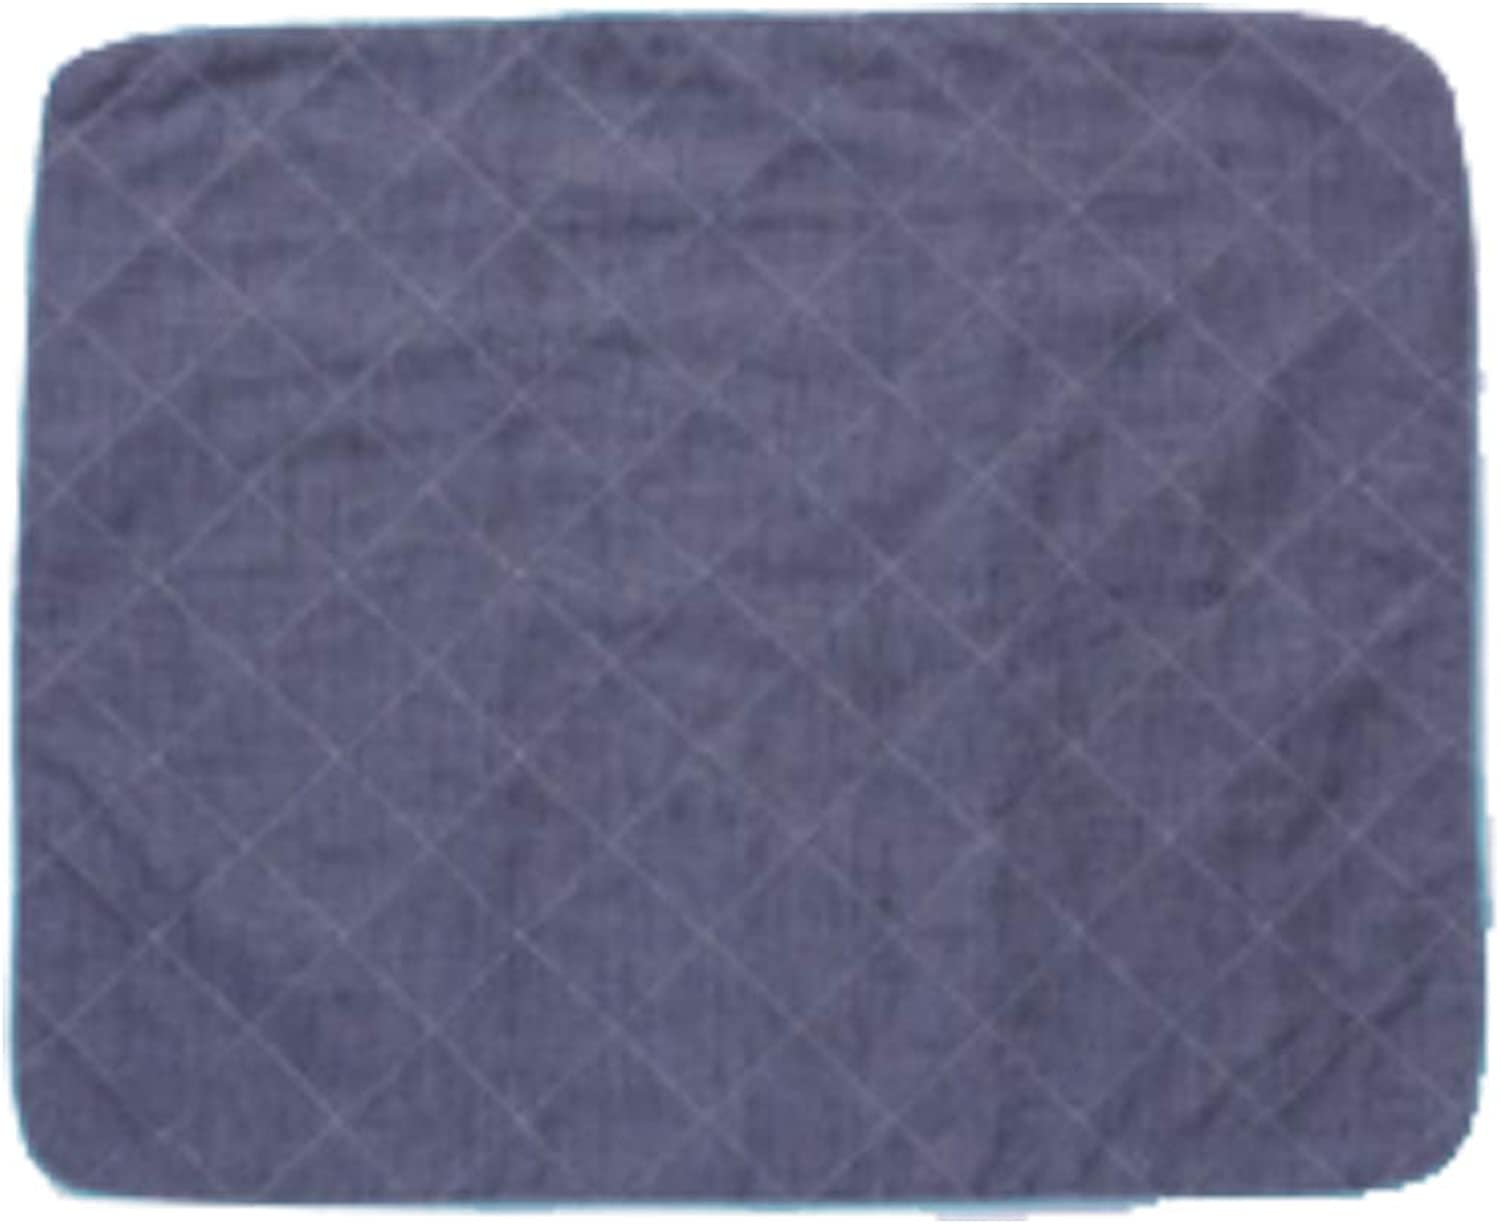 PDDJ Dog Bed Sleeping Pad With Soft And Breathable, Clean Air Breathing Cushion For Dog Bed Mat Crate